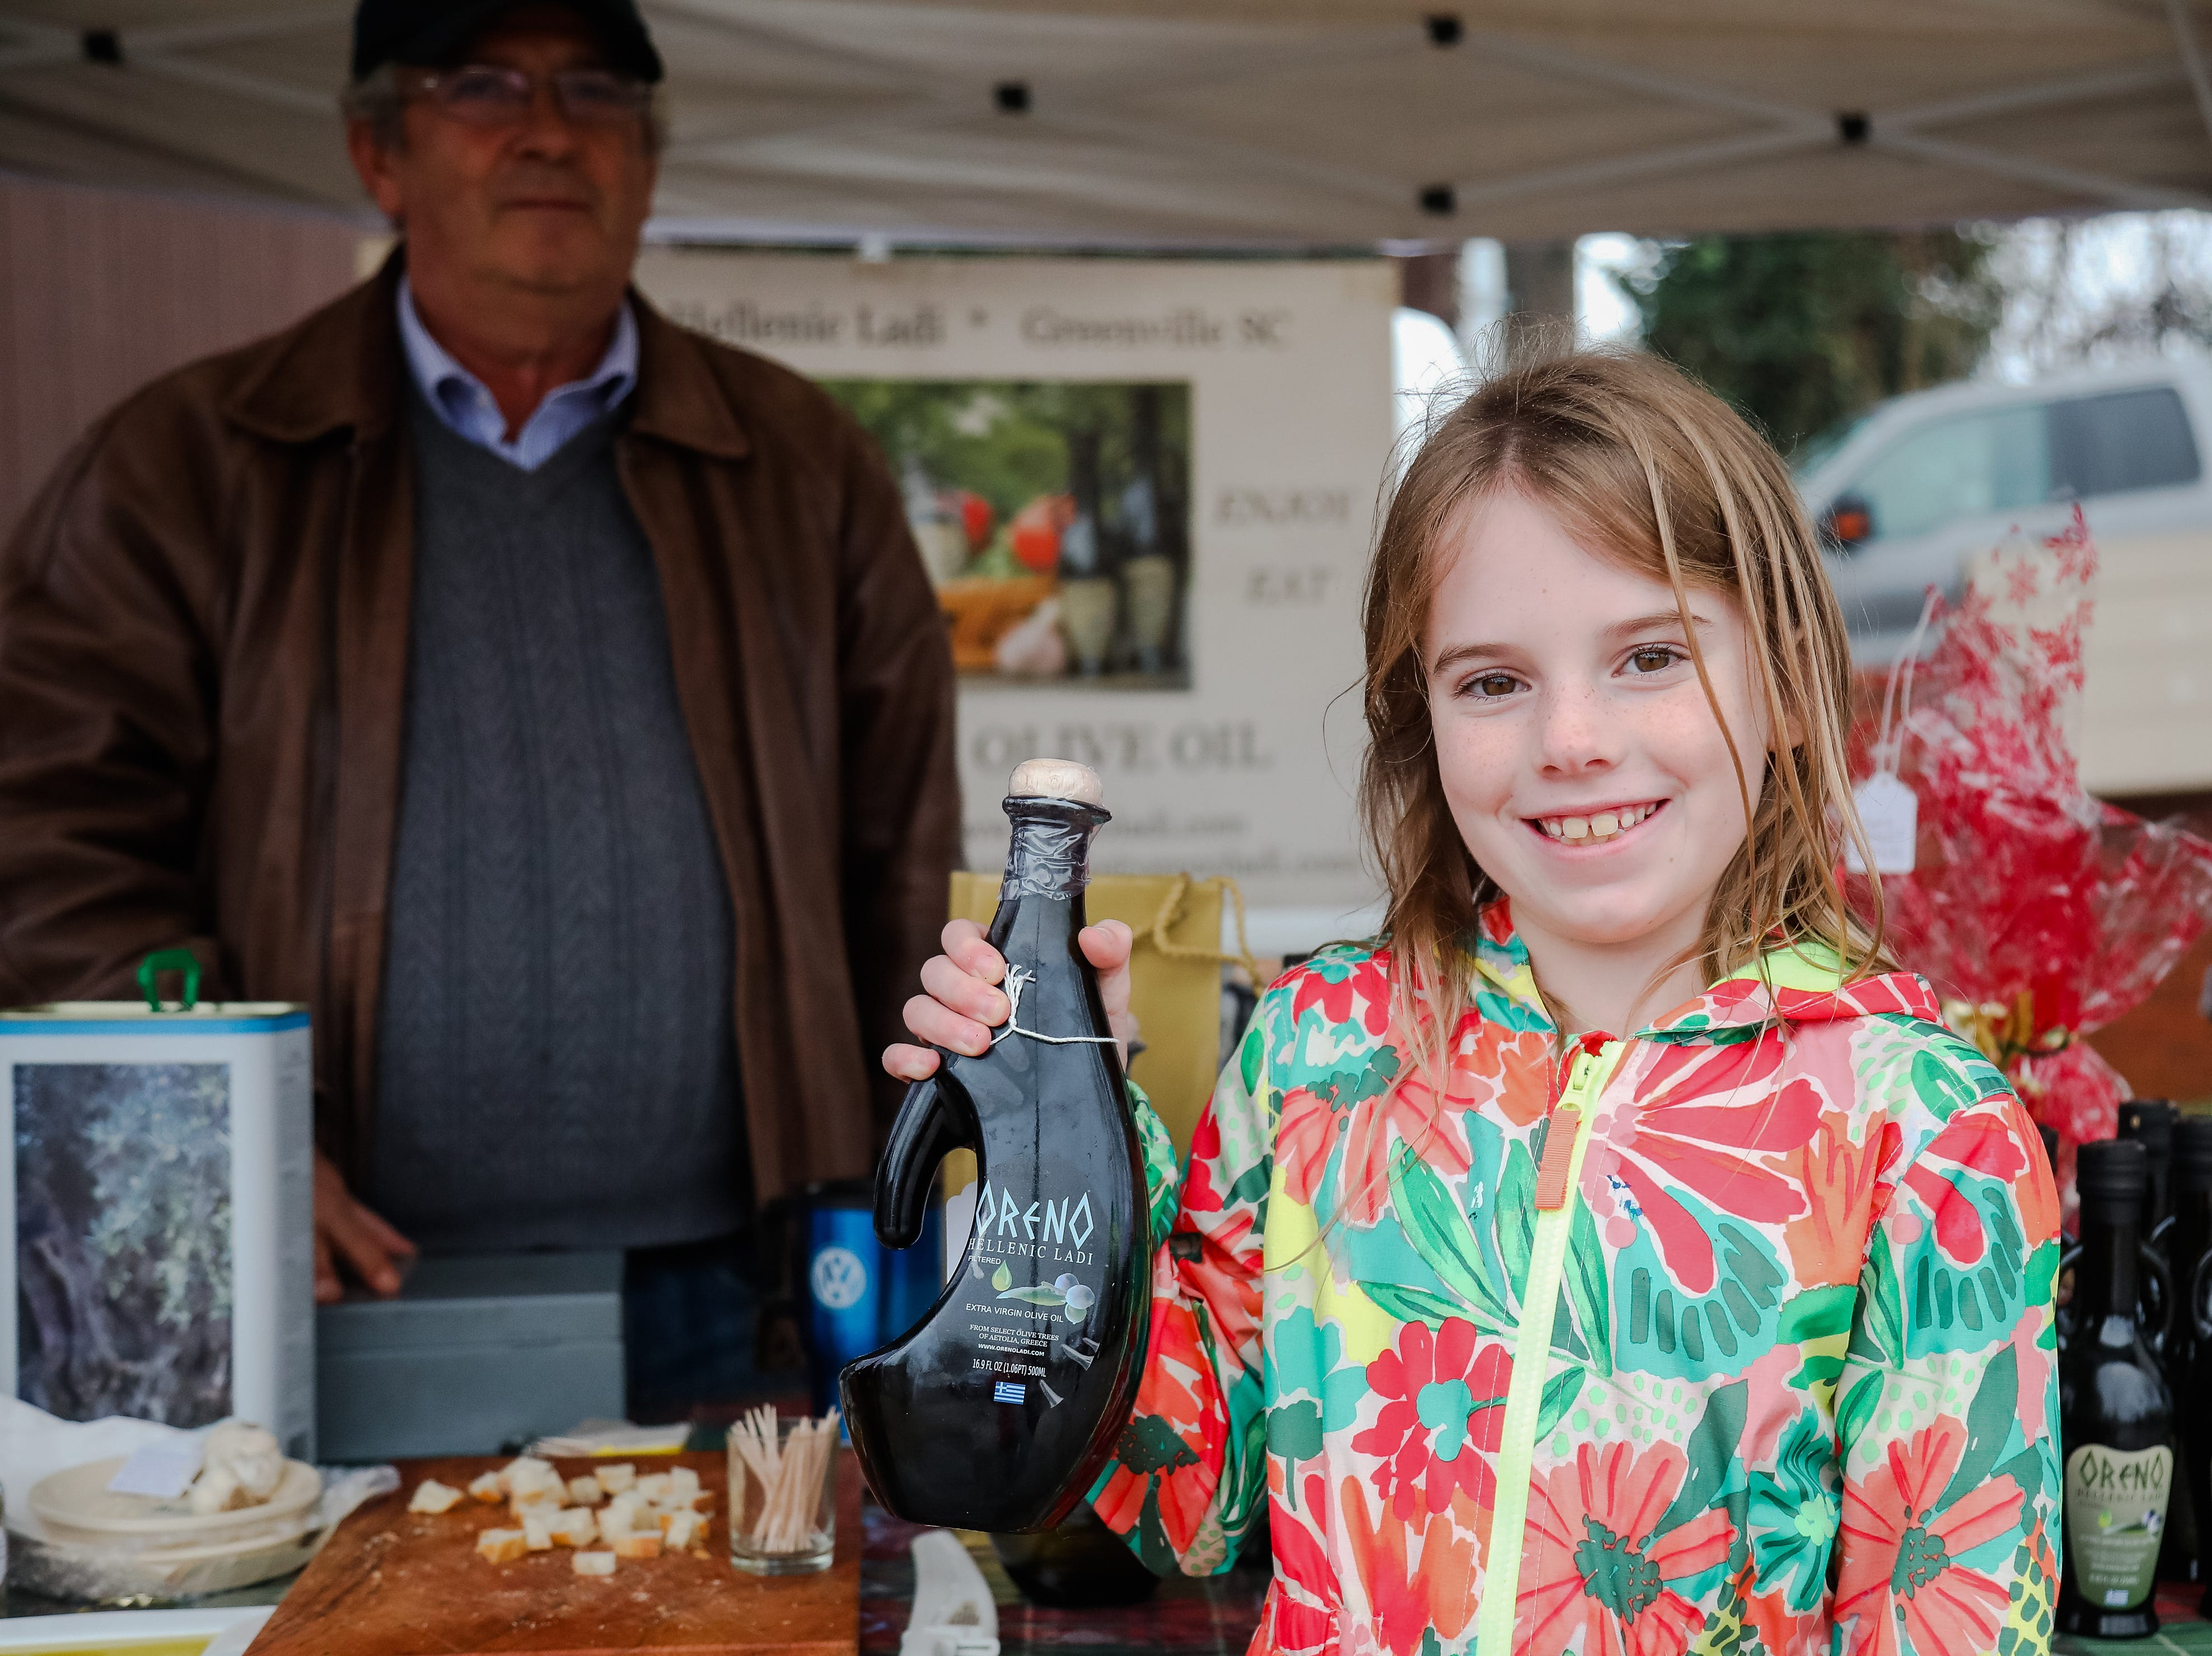 Kiera Miller (8 years old)  shows of her favorite olive oil from the Oreno Hellenic Ladi. The Swamp Holiday Flea at the Swamp Rabbit Cafe & Grocery featuring local artists, woodworkers, candle makers, potters, and dog-treat bakers.  In addition to 40+ vendors, and  music from a local acoustic band. Saturday December 15,2018